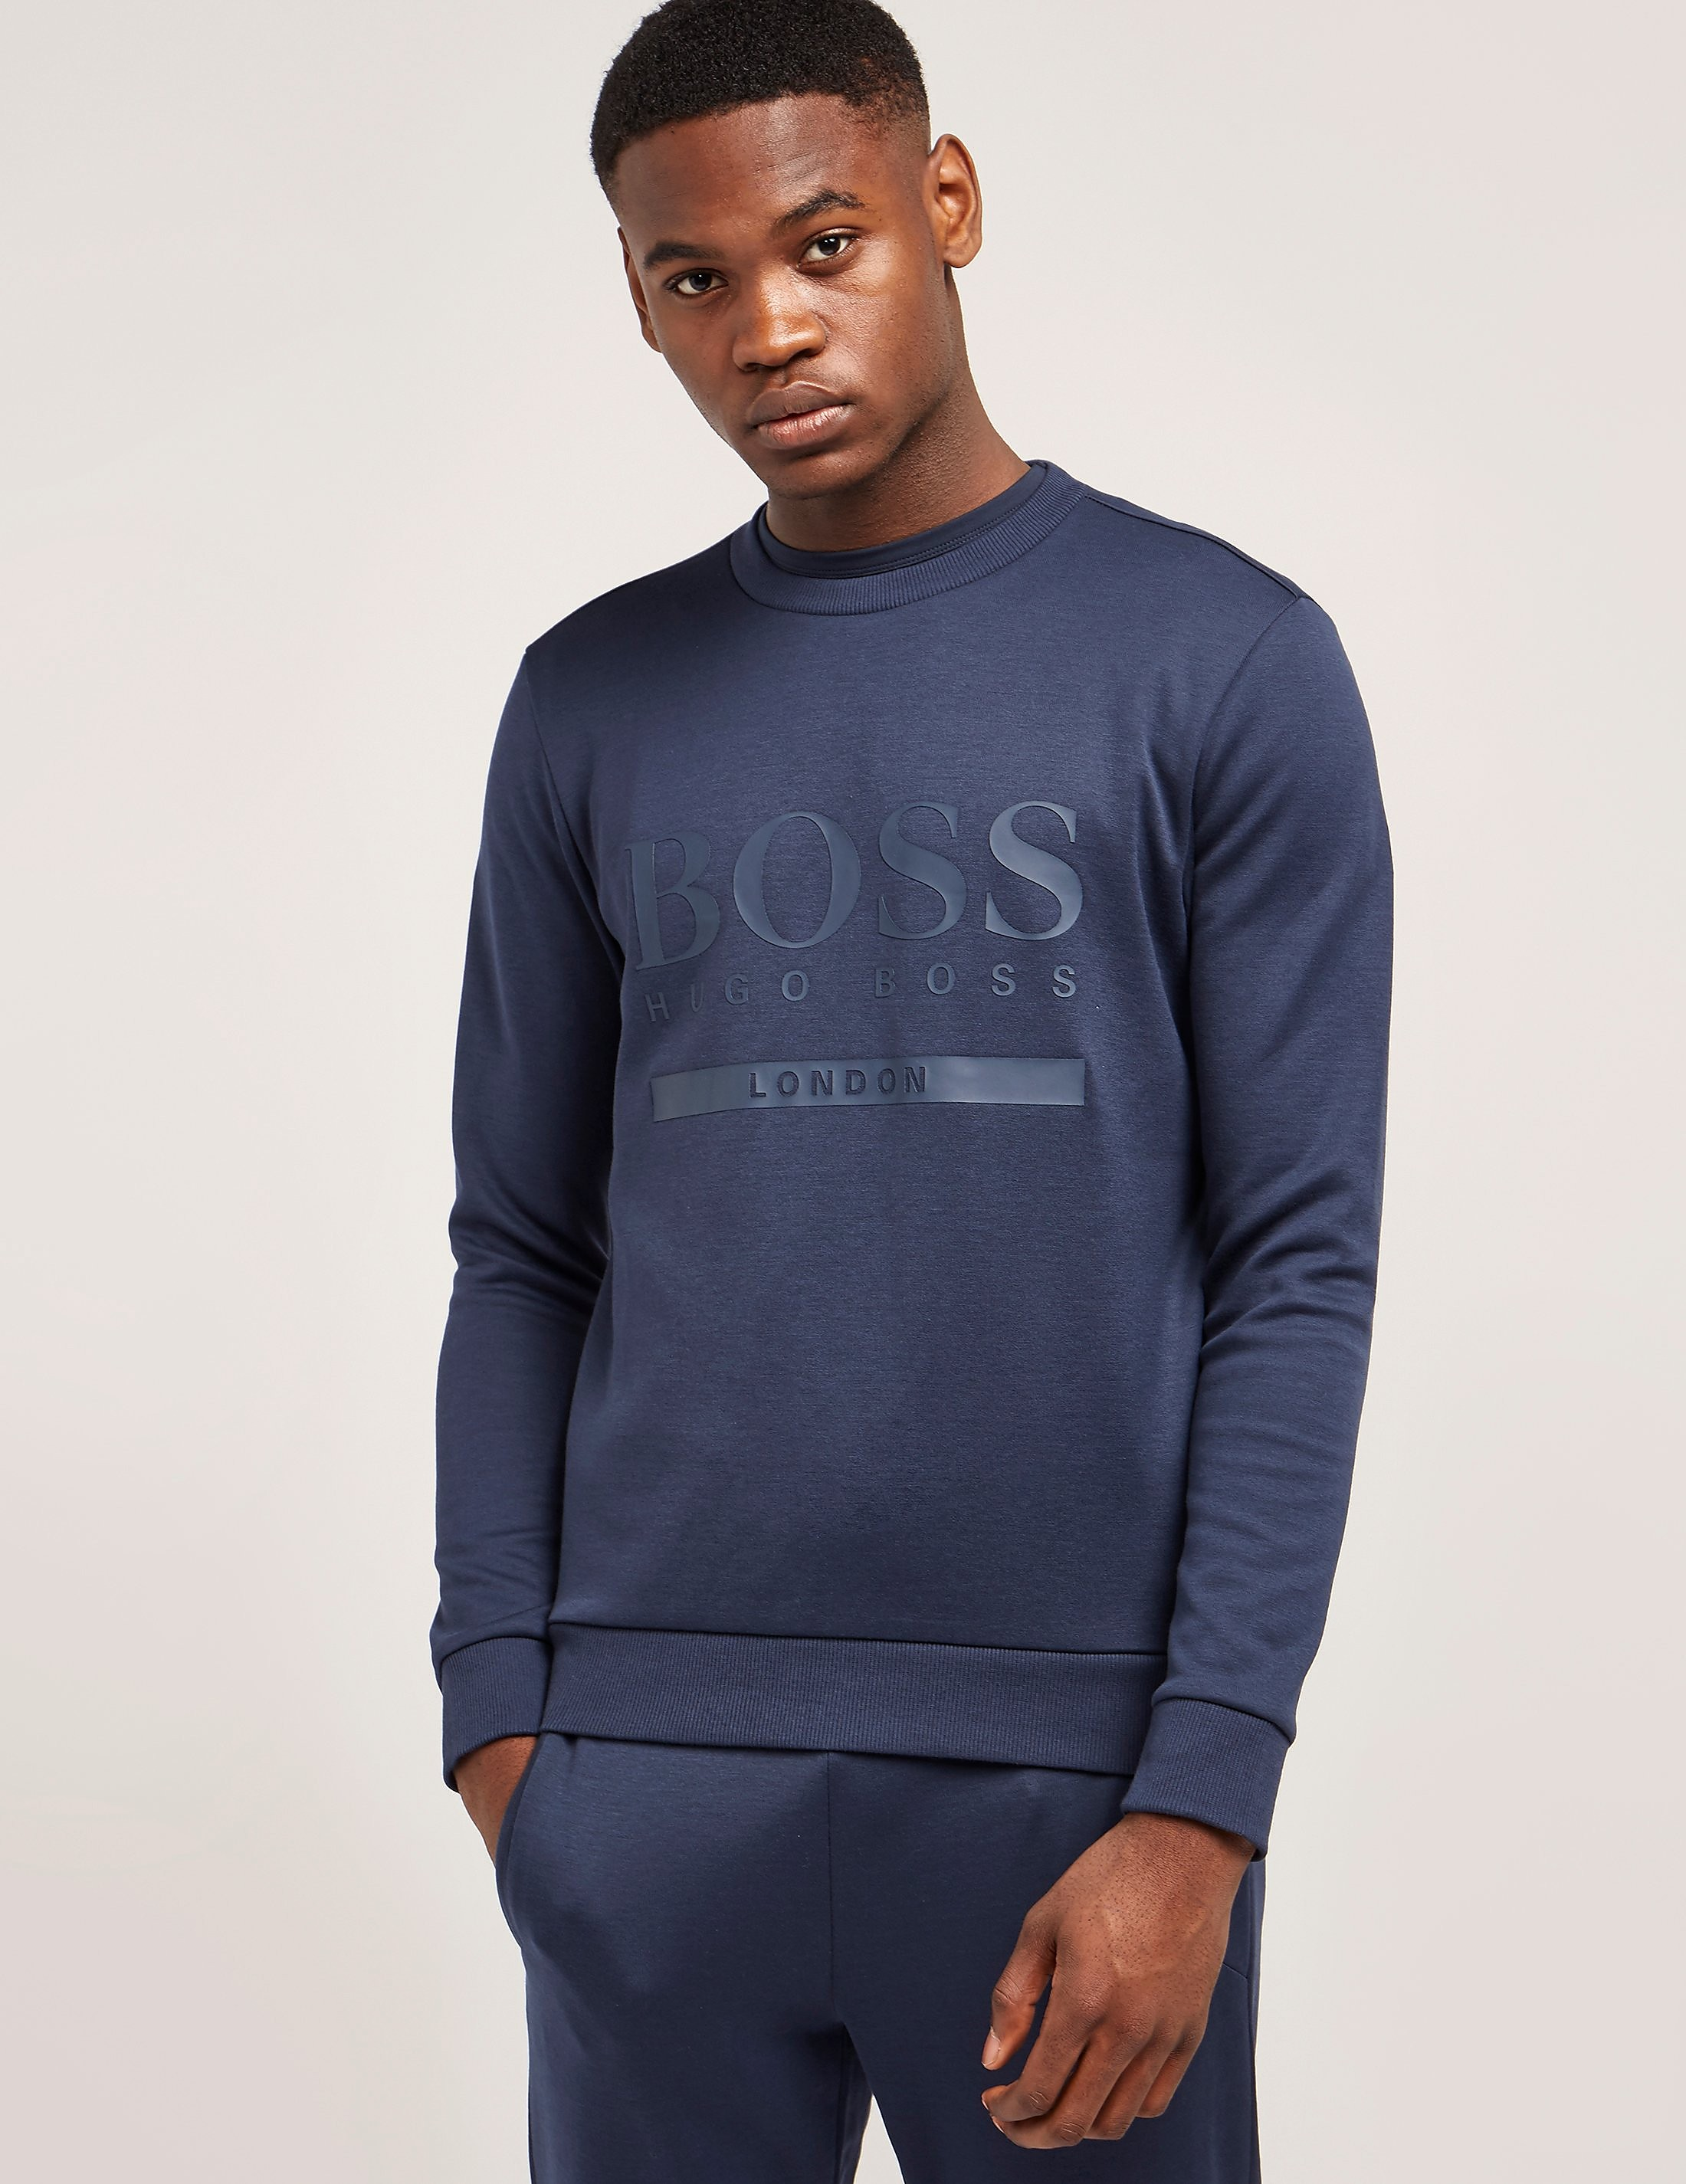 BOSS Green London Sweatshirt